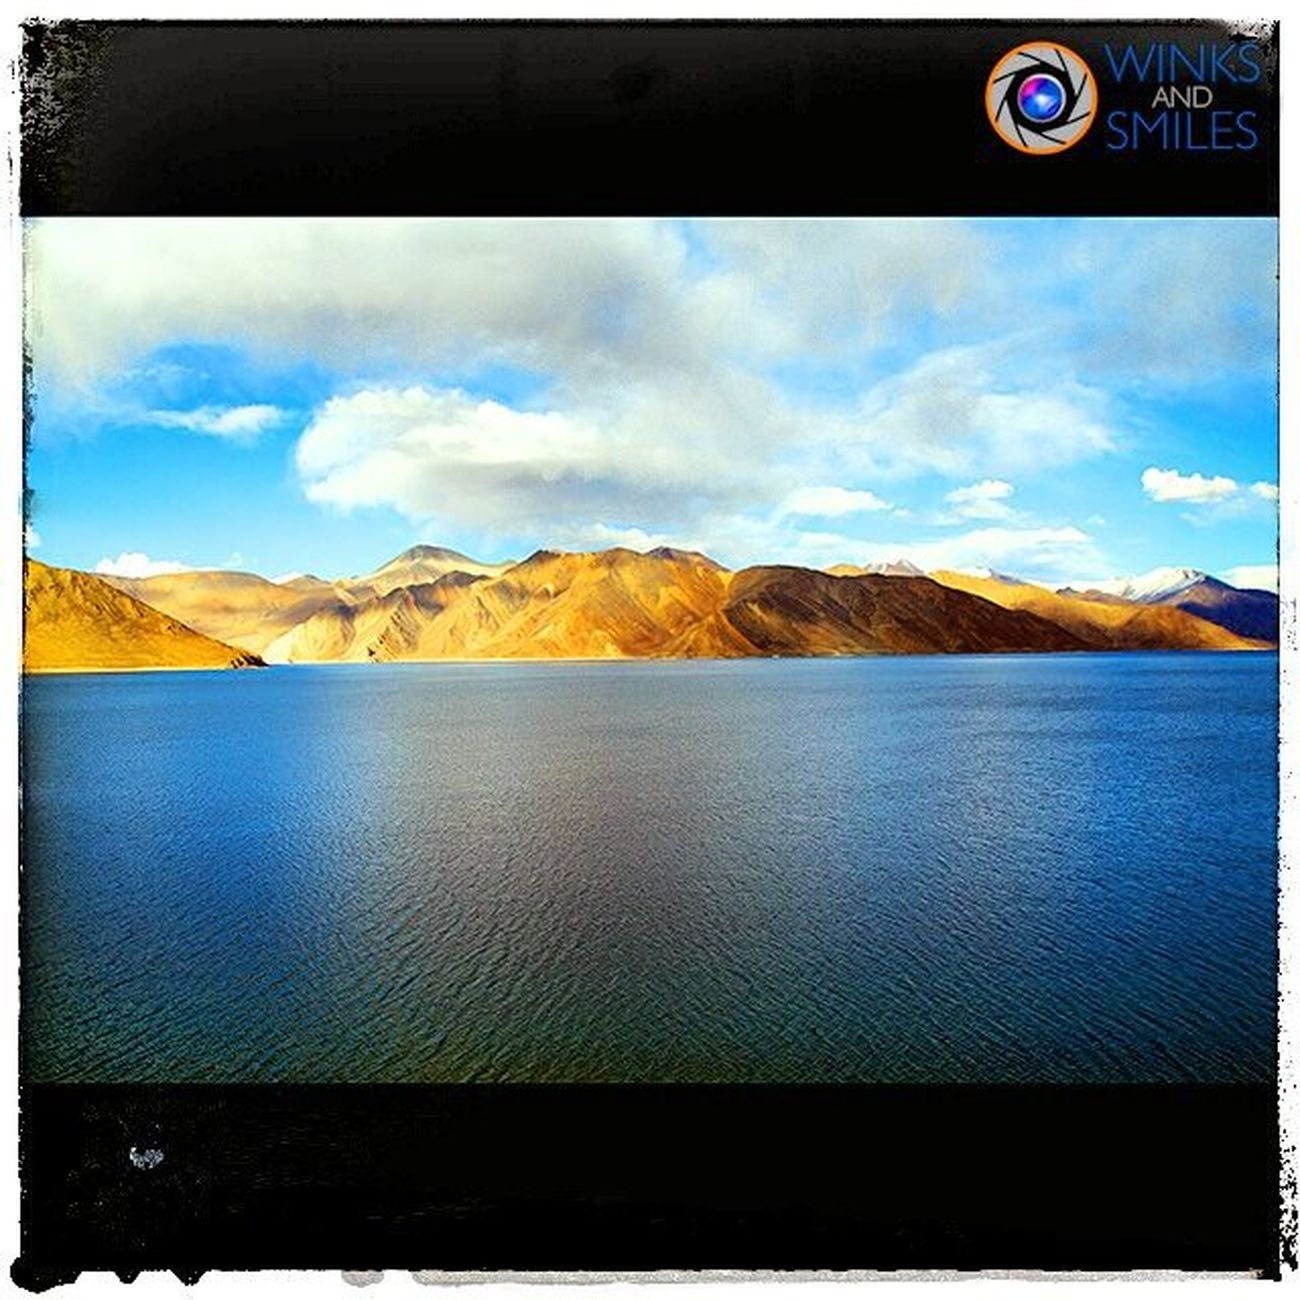 -------------------------------------------------------------------------------------------- 💖🇵🇦🇳🇬🇴🇳🇬 🇱🇦🇰🇪, 🇱🇦🇩🇦🇰🇭 💖 -------------------------------------------------------------------------------------------- SEEING THIS BEYOND BEAUTY, YOU STILL NEED A BRIEF? I DON'T THINK SO! 💕💕💕 (If the answer is yes, please go through my earlier posts on Pangong Lake in my gallery) LehLadakh India Indiabestpic Convexrevolution Incredibleindia Landscape_captures Pangonglake Landscapeofinstagram Ladakhdiaries2015 Indianphotographer Travelgram Instago Thebestofthis Travelphotography Photographers_of_india Instapic Instapicoftheday VSCO Lakesofinstagram Followforfollow Likeforlike Holiday Ig_photoclub Click_india_click Ig_himalaya explorethroughcamera thatperfectshot exploreindia yin_india